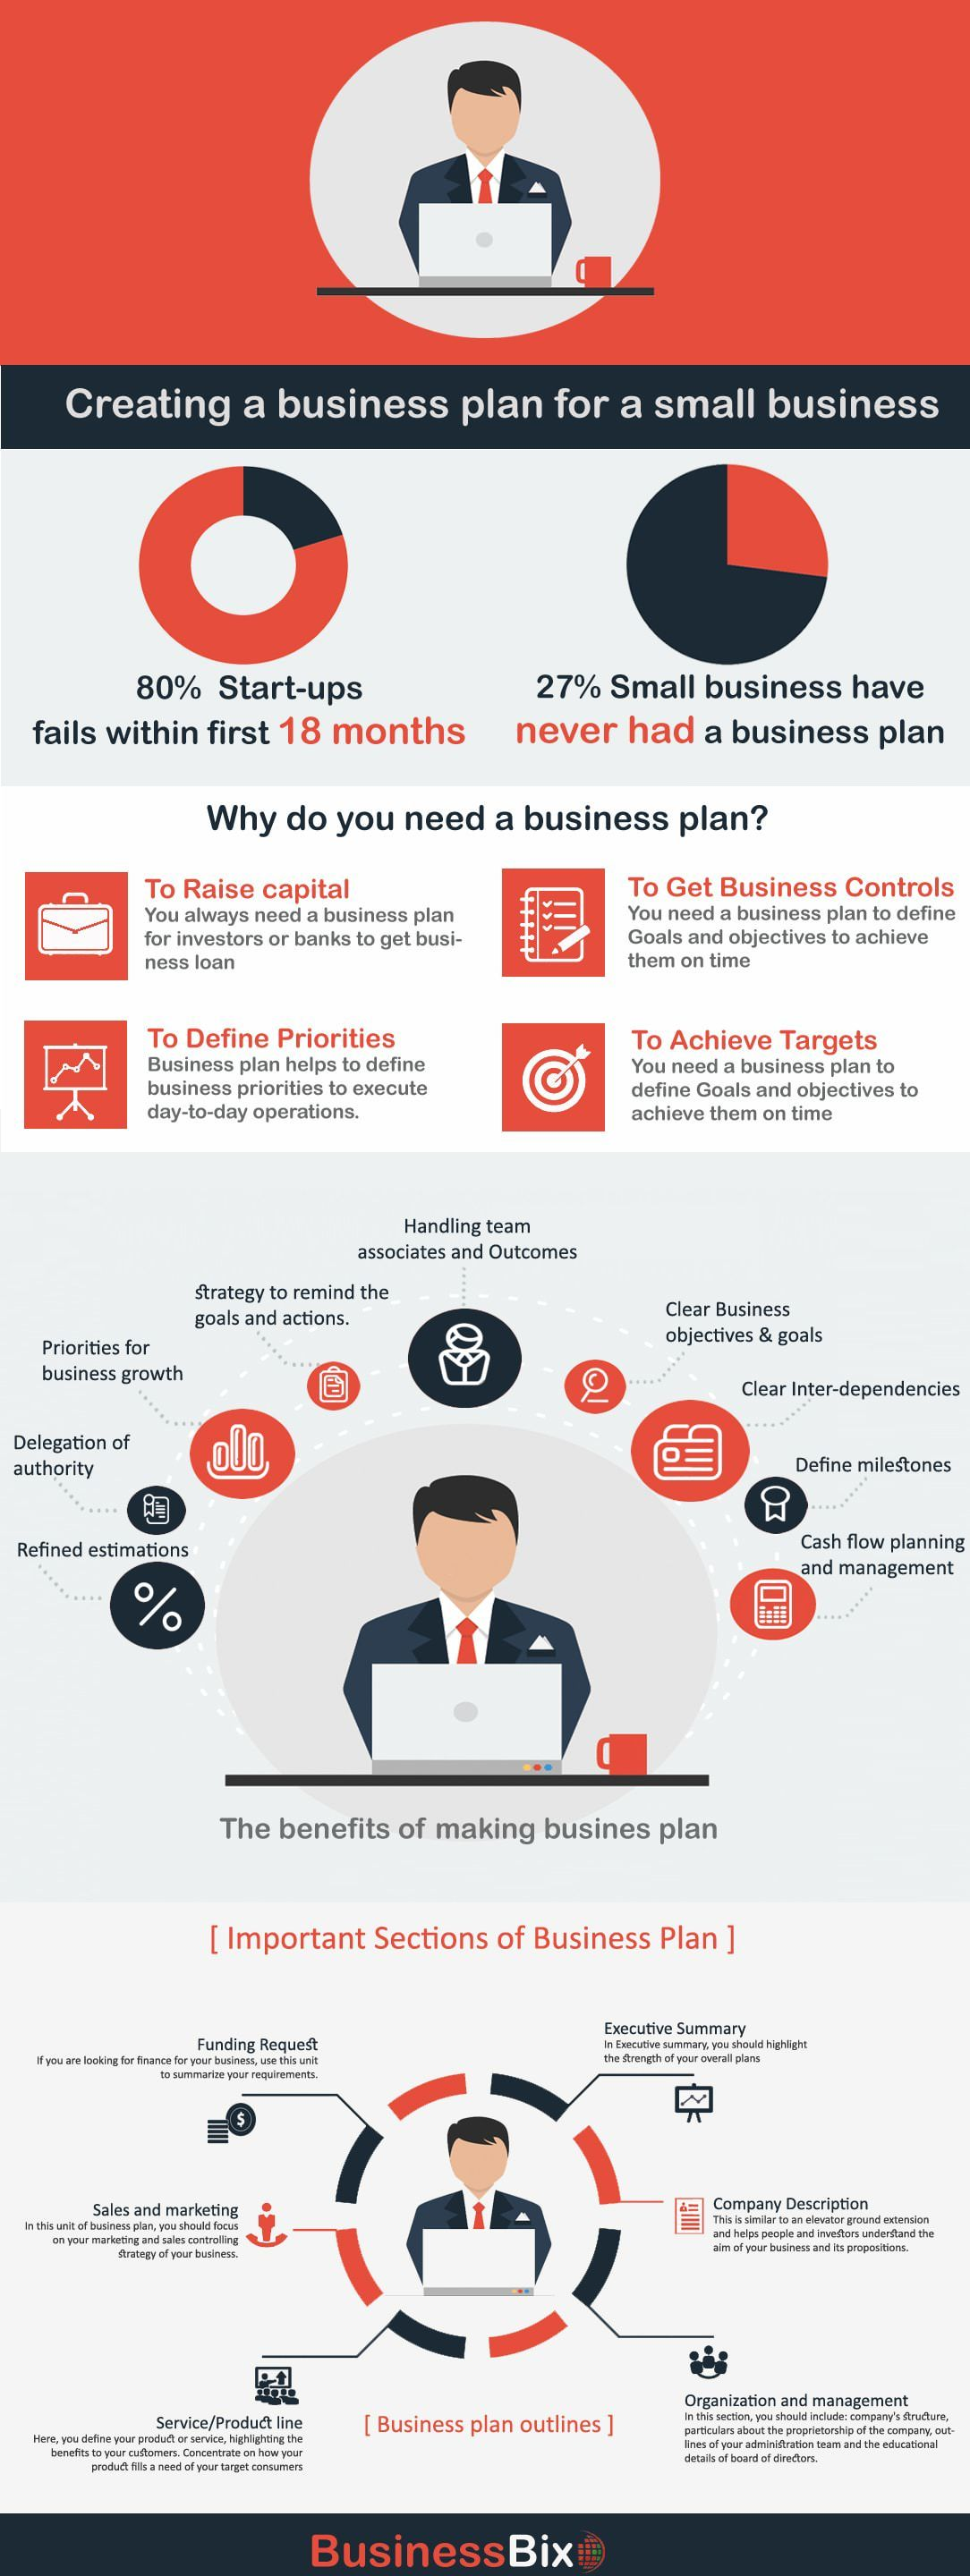 How To Write An Effective Business Plan For Small Business